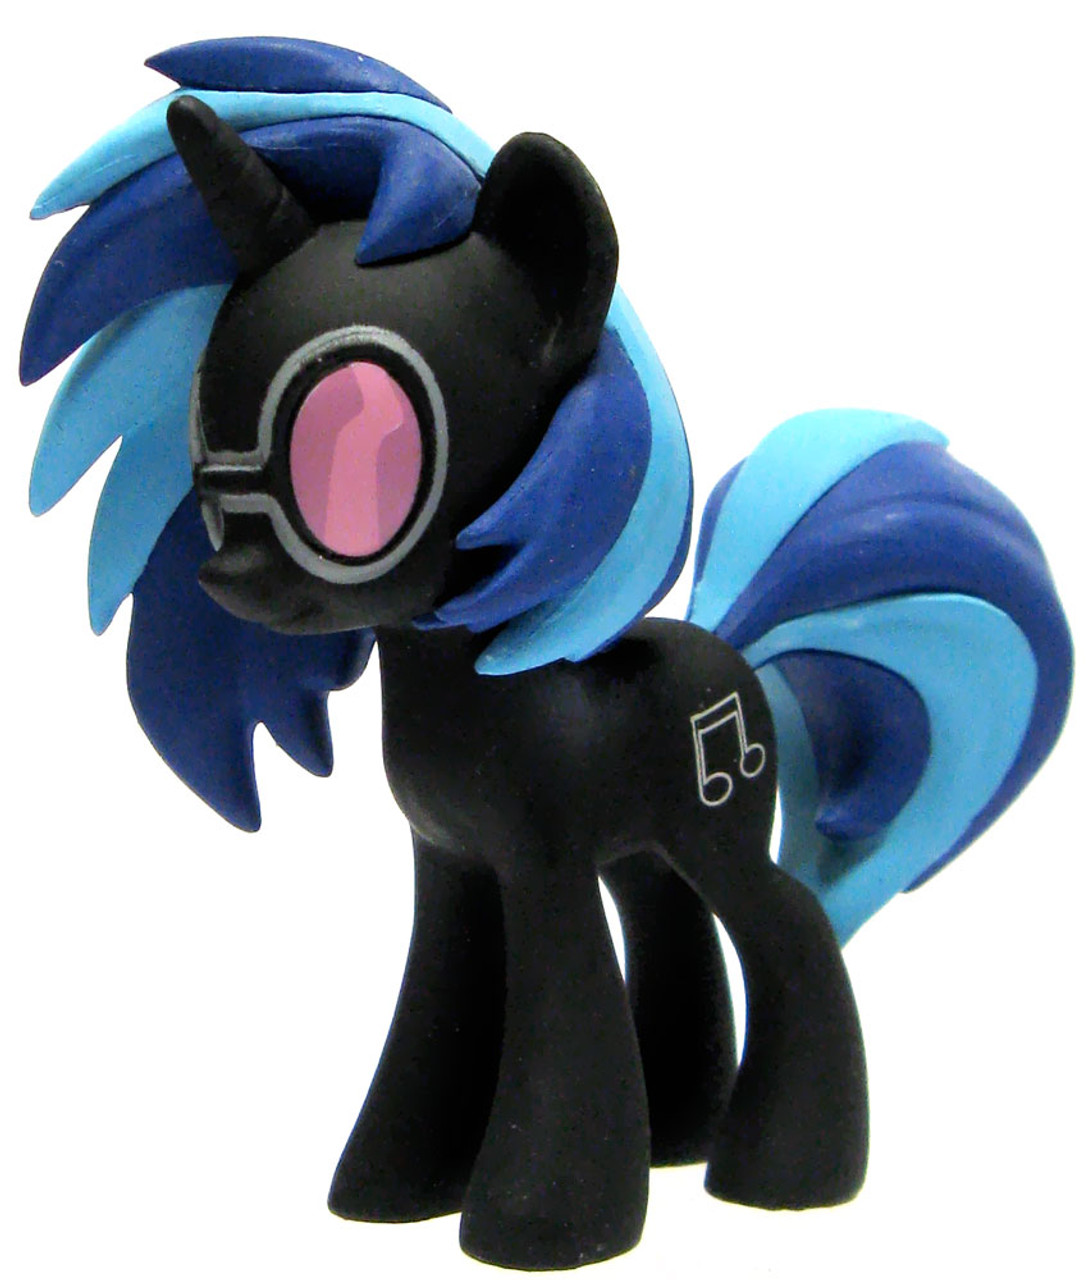 Funko My Little Pony Series 1 Mystery Minis DJ P0N-3 [Vinyl Scratch] Mystery Minifigure [Vinyl Scratch Loose]